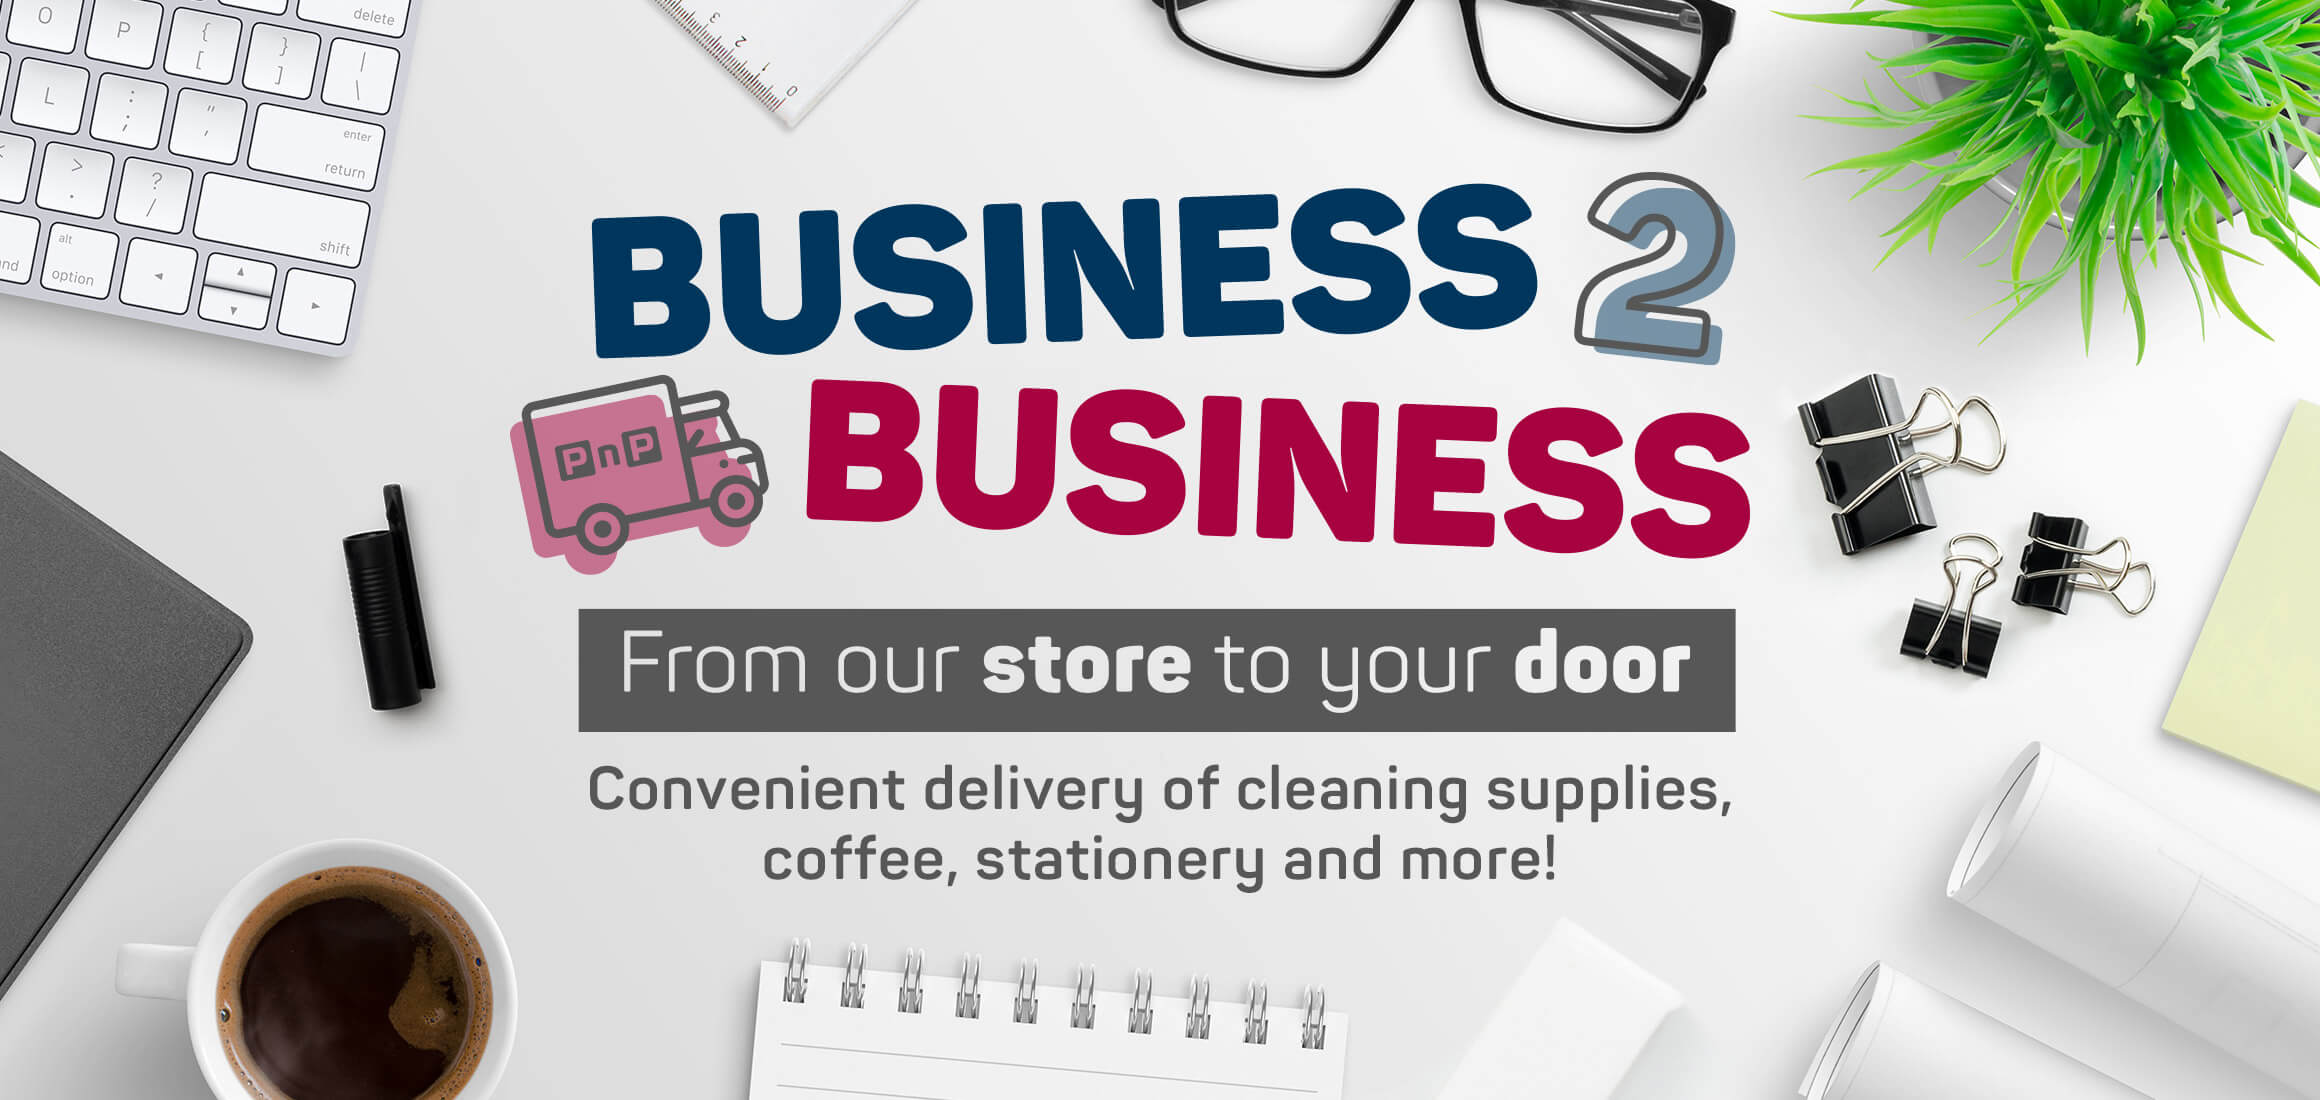 Business 2 business. From our store to your door